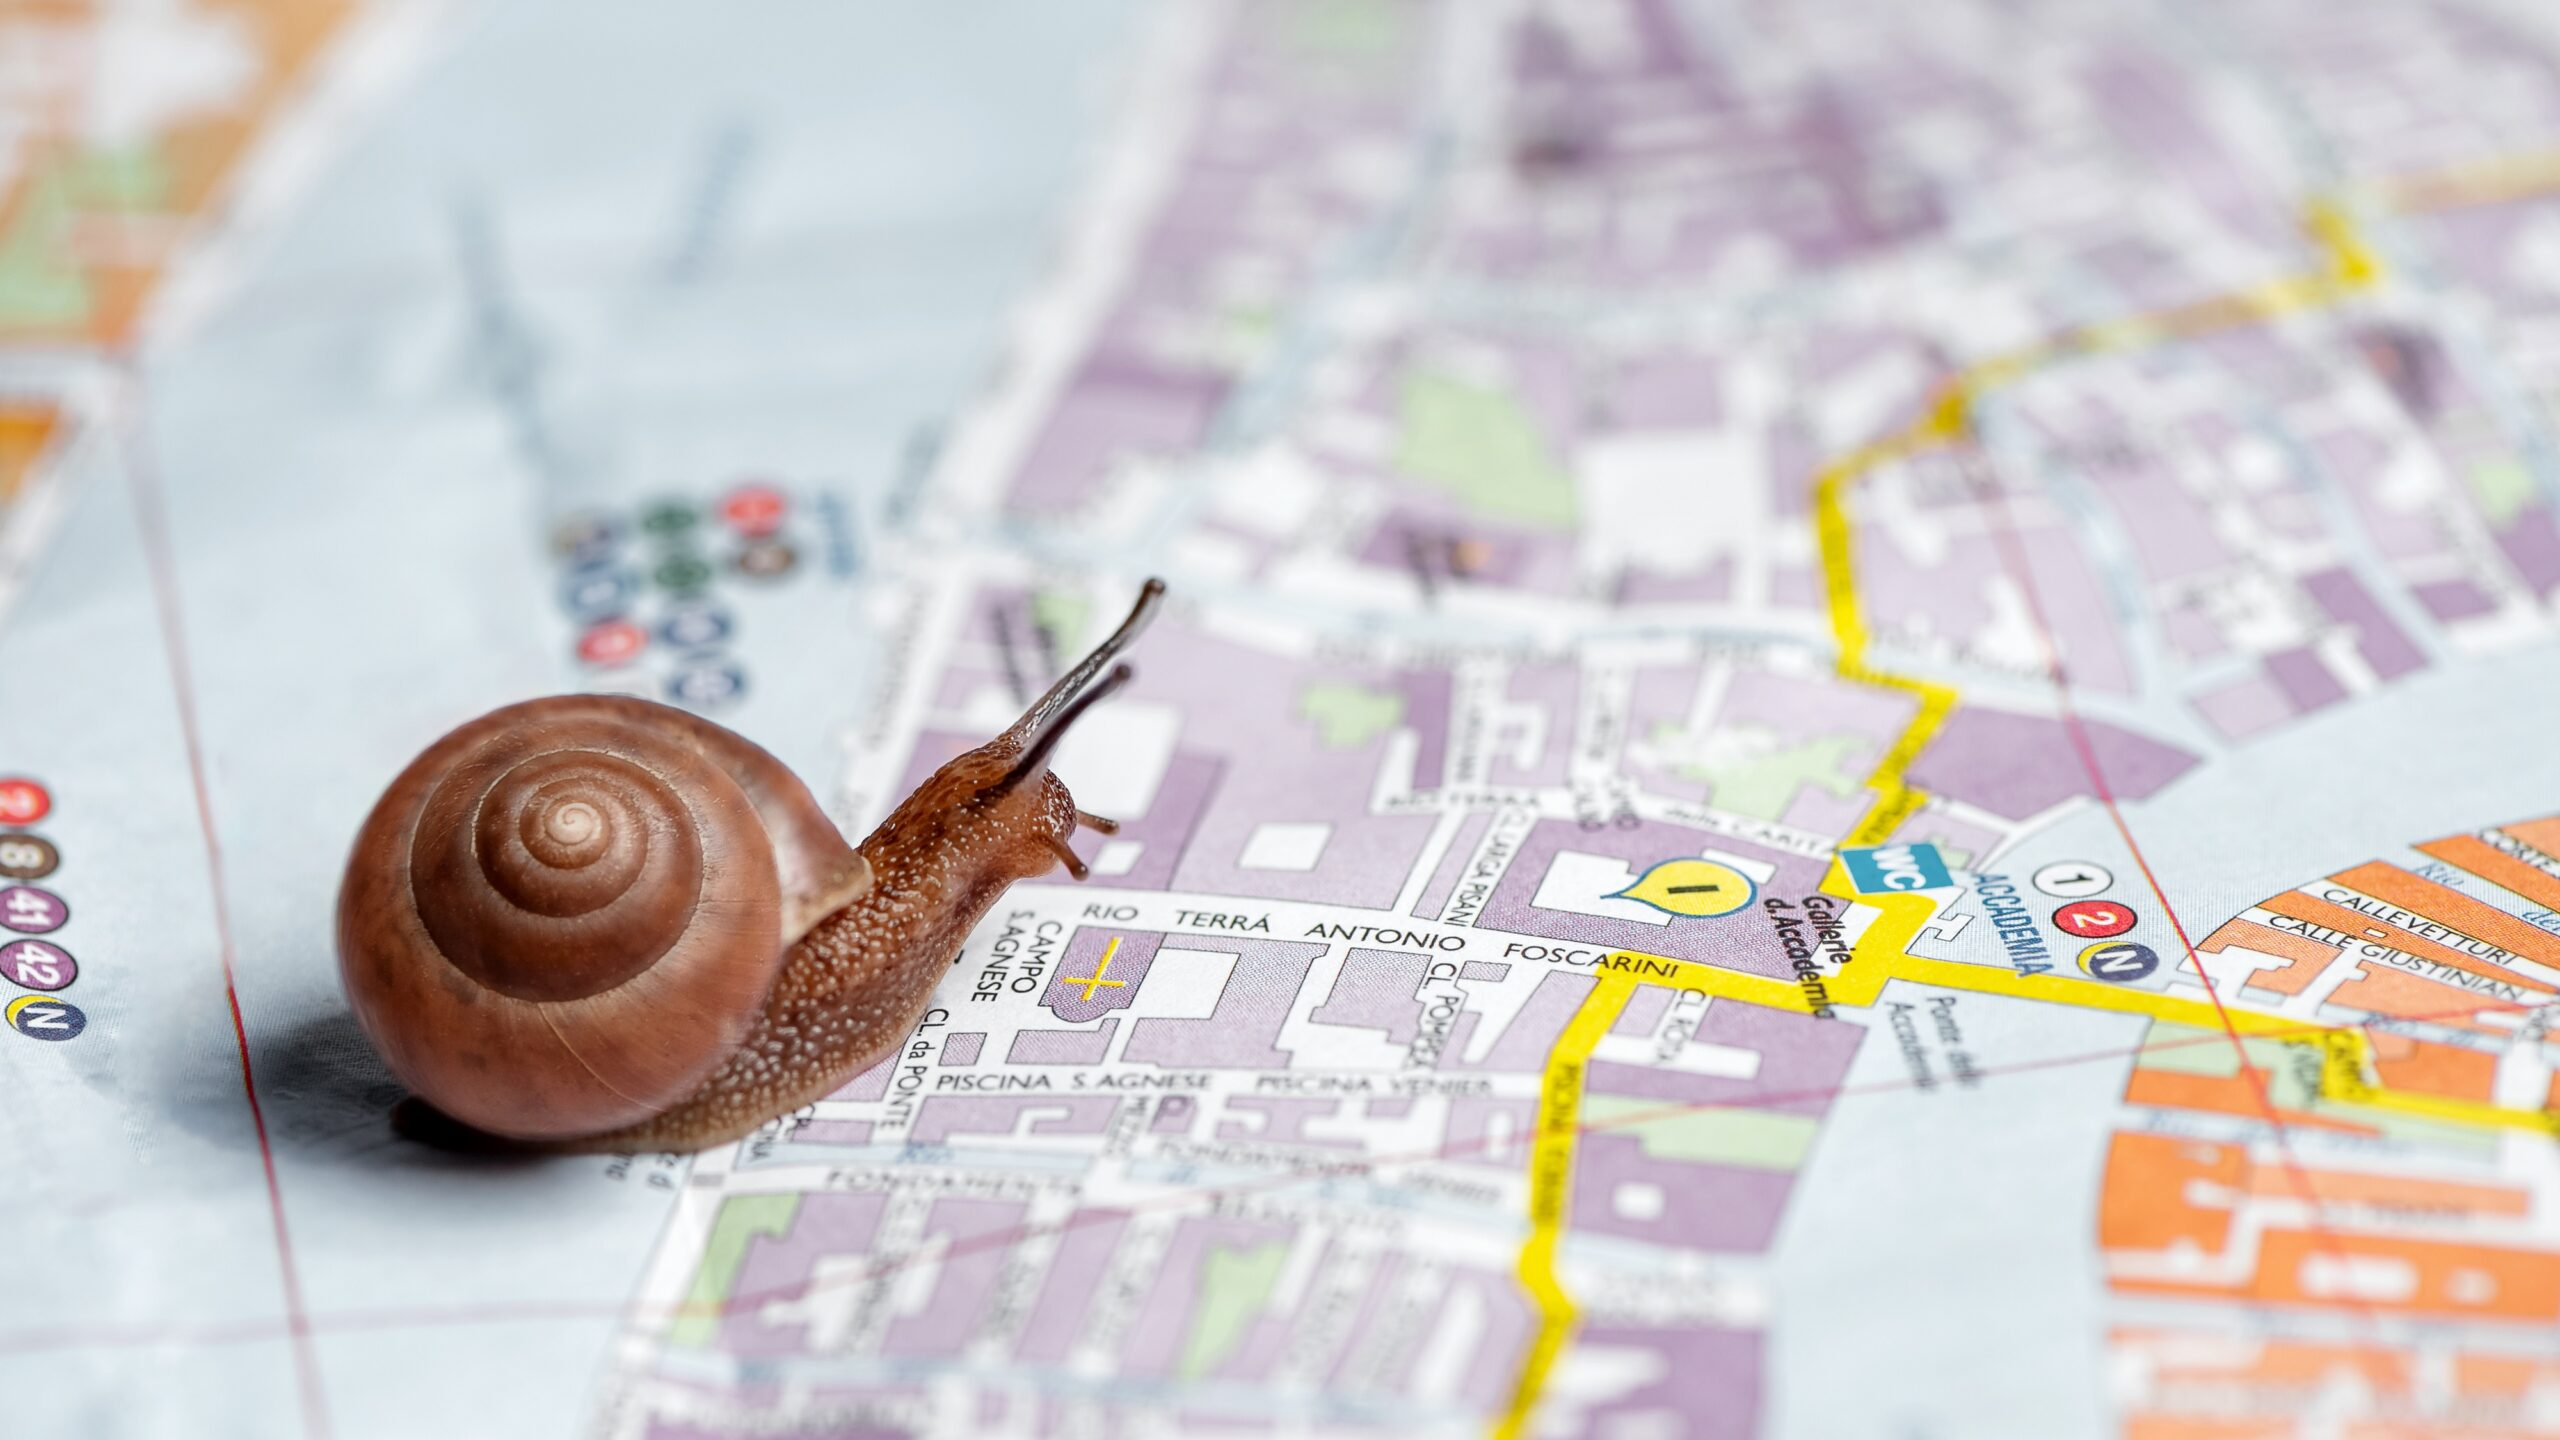 What is slow travel? The slow movement or philosophy changes the way we travel.